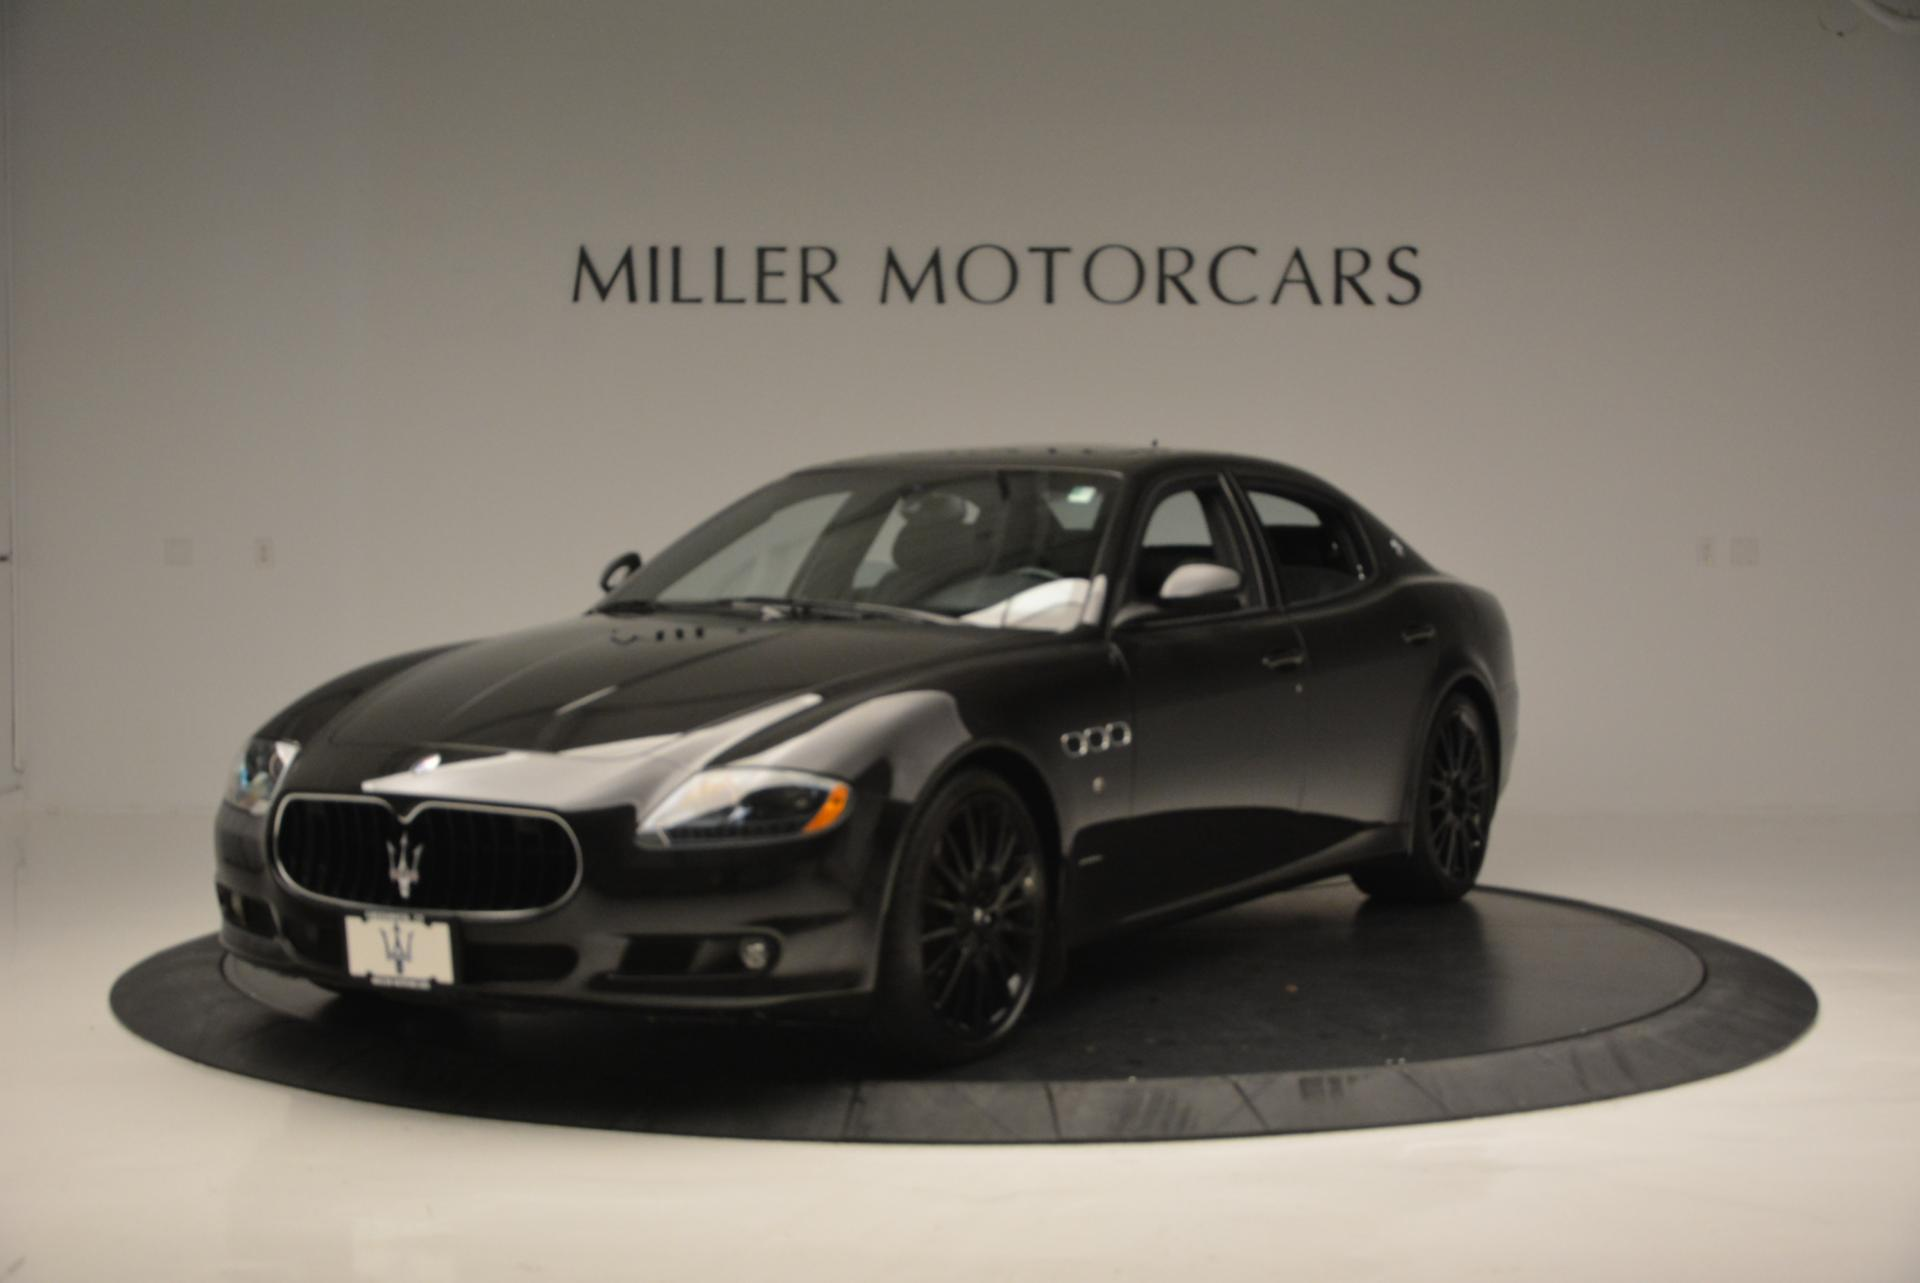 Used 2011 Maserati Quattroporte Sport GT S for sale Sold at Aston Martin of Greenwich in Greenwich CT 06830 1